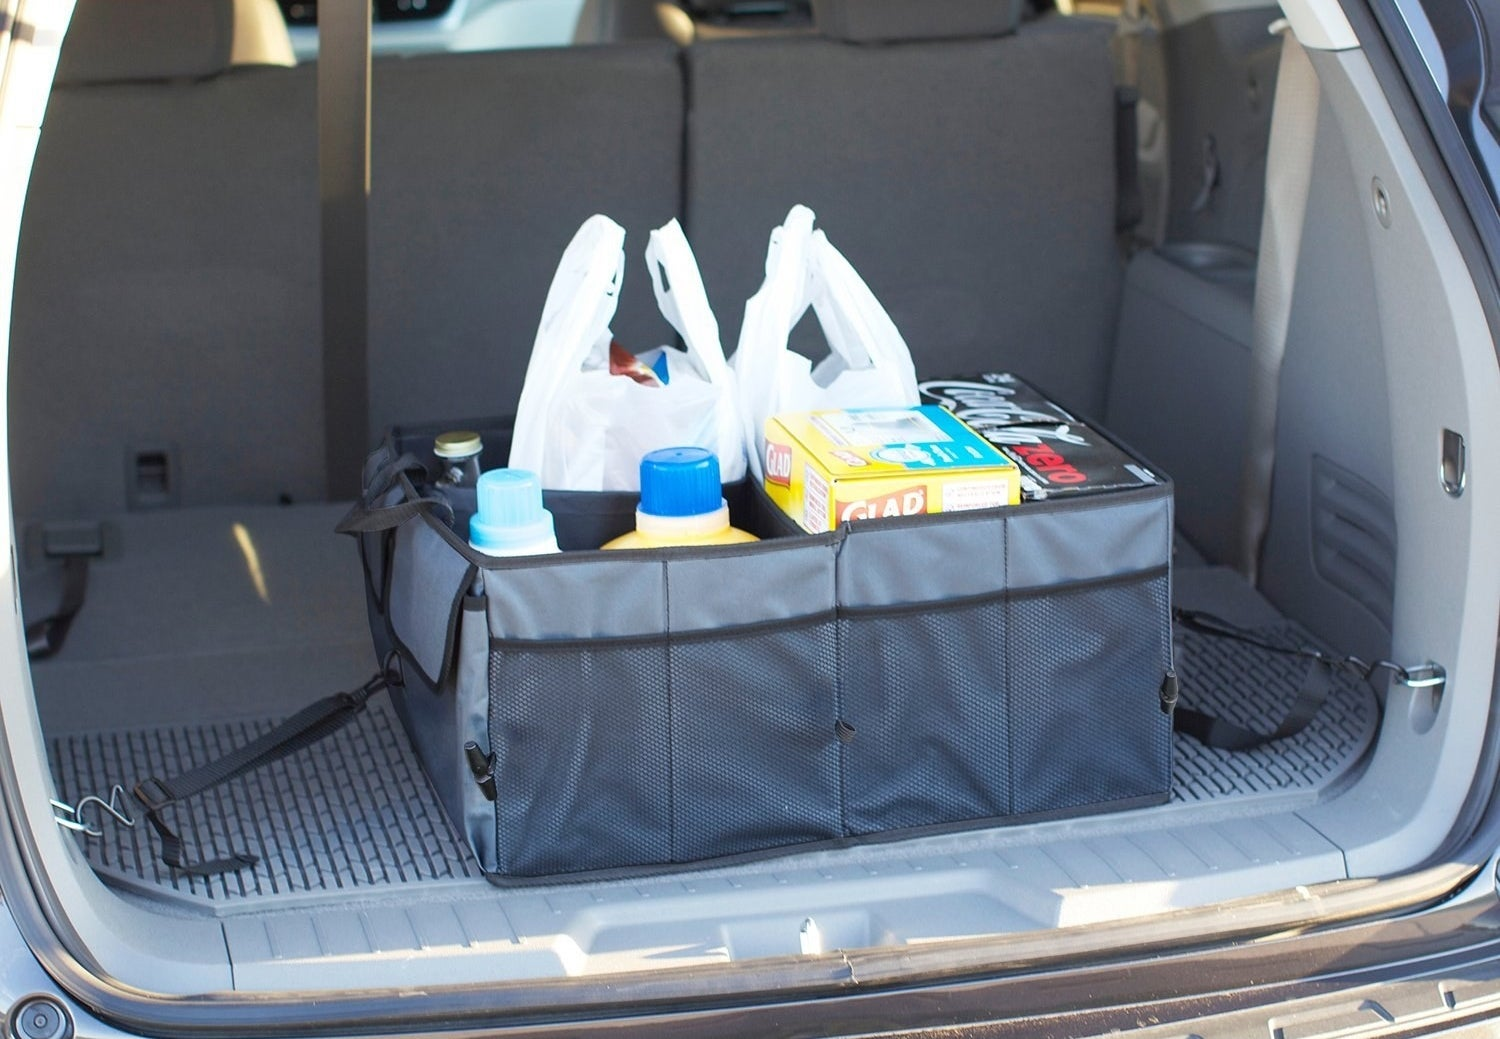 "Promising review: ""I have used this product both in the back of my car and in the passenger seat while traveling. I like the tie-down hooks that allow me to fasten the product to the back of my cross-over vehicle, it keeps items stable and protected. I'm able to place my cooler in it to stabilize my glass purchases—which helps tremendously. On my last long-distance trip, I used it in the passenger seat to stabilize my water bottles, my books, my snacks, and everything was at arms-reach. Best of all, I wasn't hunting for stuff in the floorboard because I hit the brakes."" — RedsDaughterGet it from Amazon for $23.61."